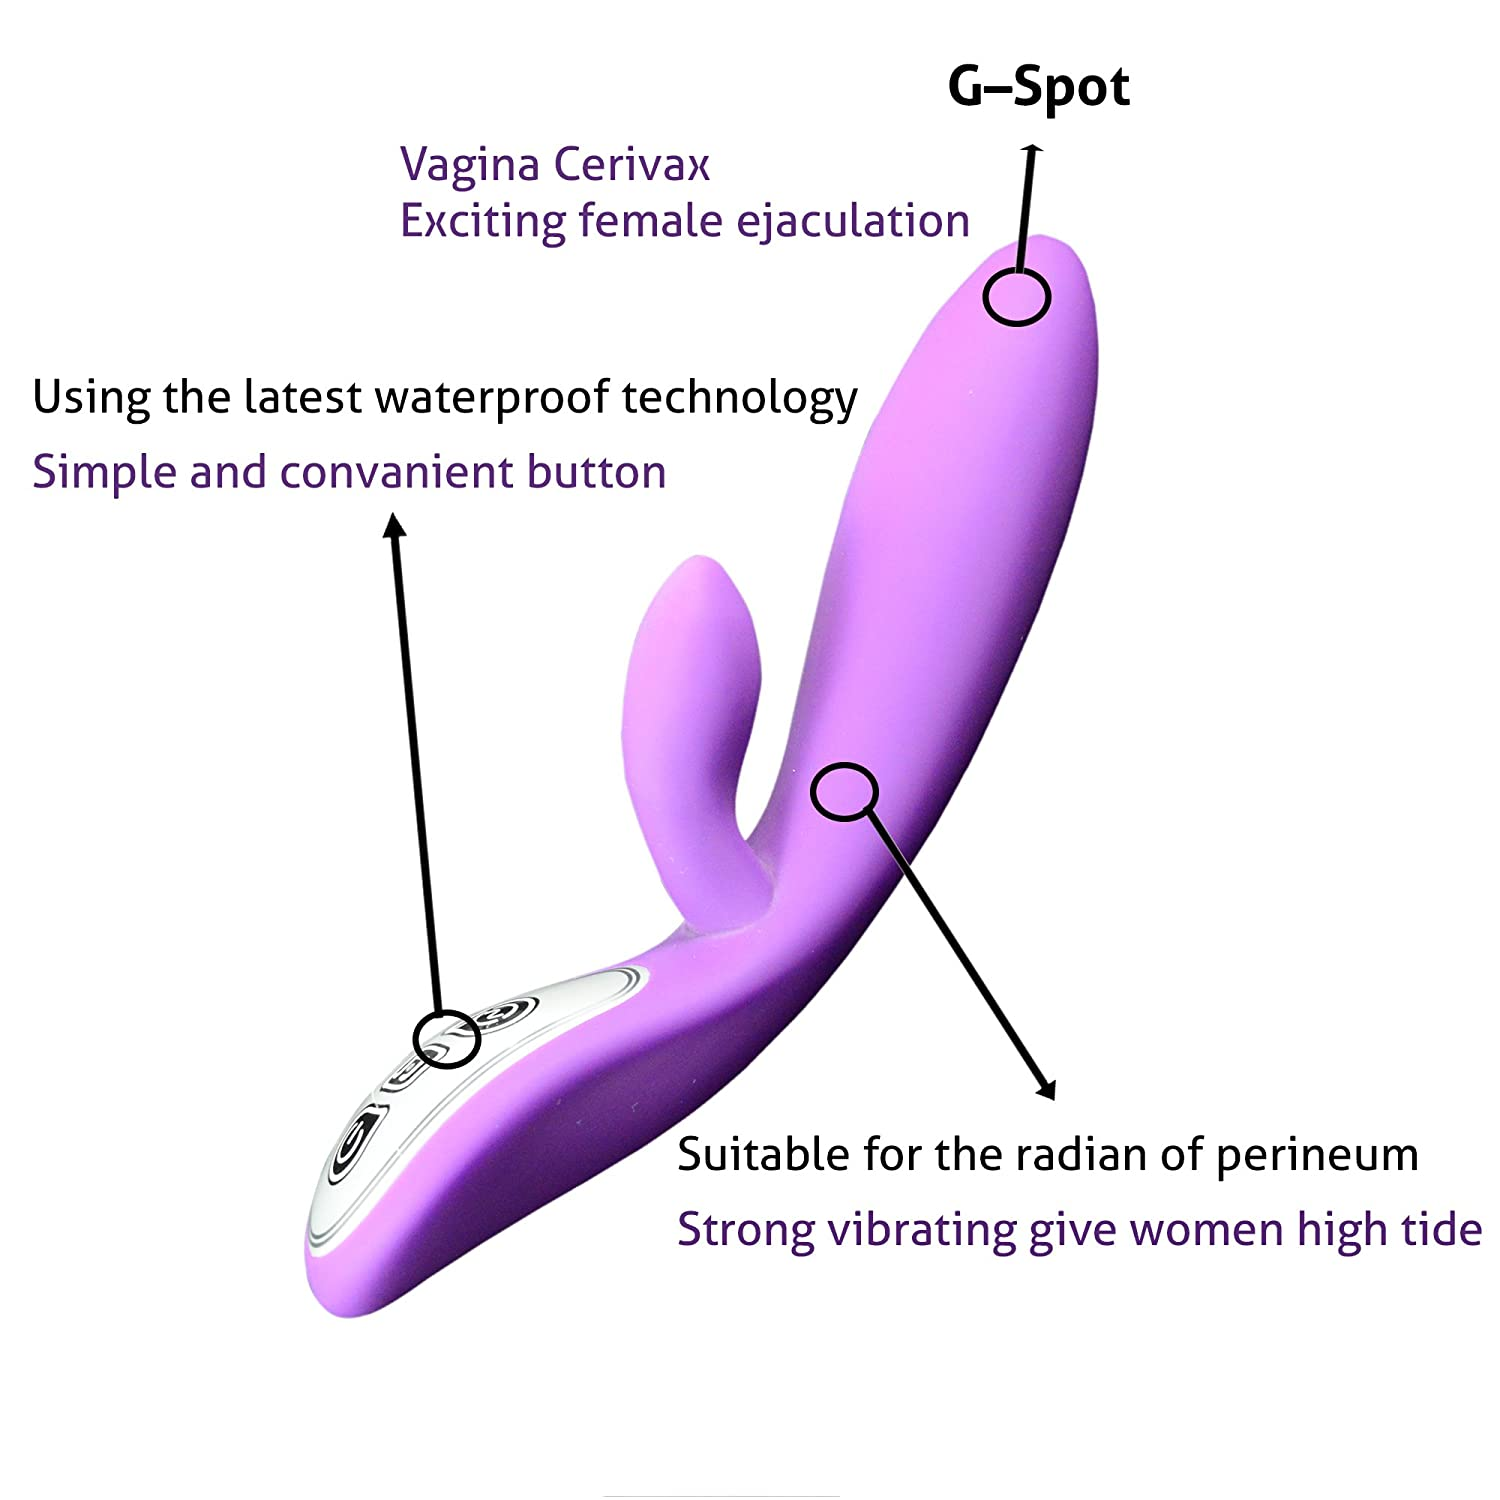 Amazon vibrator by naughty street novelties llc silicone amazon vibrator by naughty street novelties llc silicone vibrating g spot rabbit massager rechargeable and waterproof perfect for women pooptronica